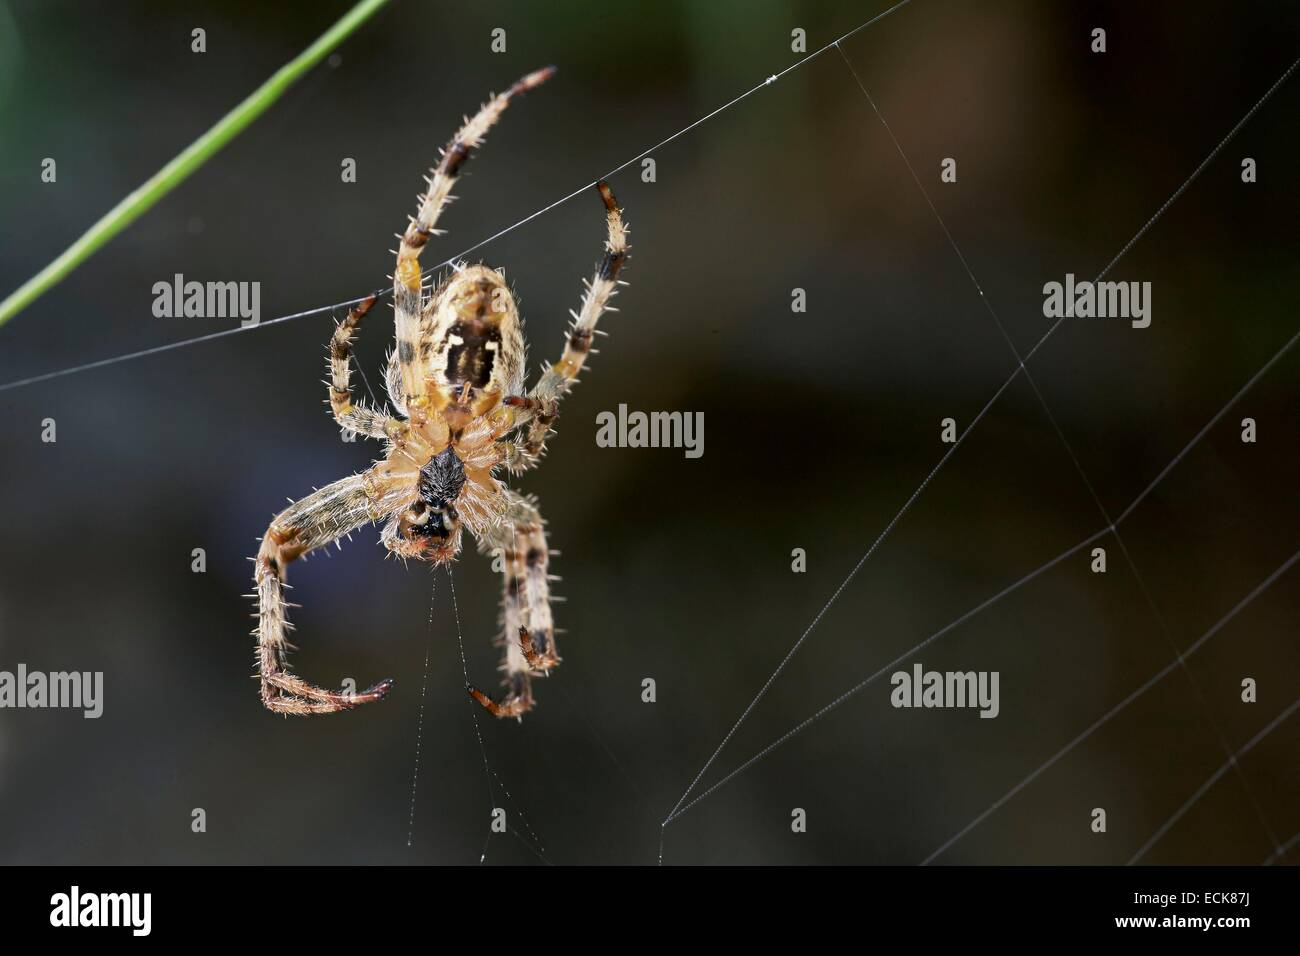 France, Araneae, Araneidae, European garden spider, Diadem spider, Cross spider, or Cross orbweave(r Araneus diadematus), - Stock Image